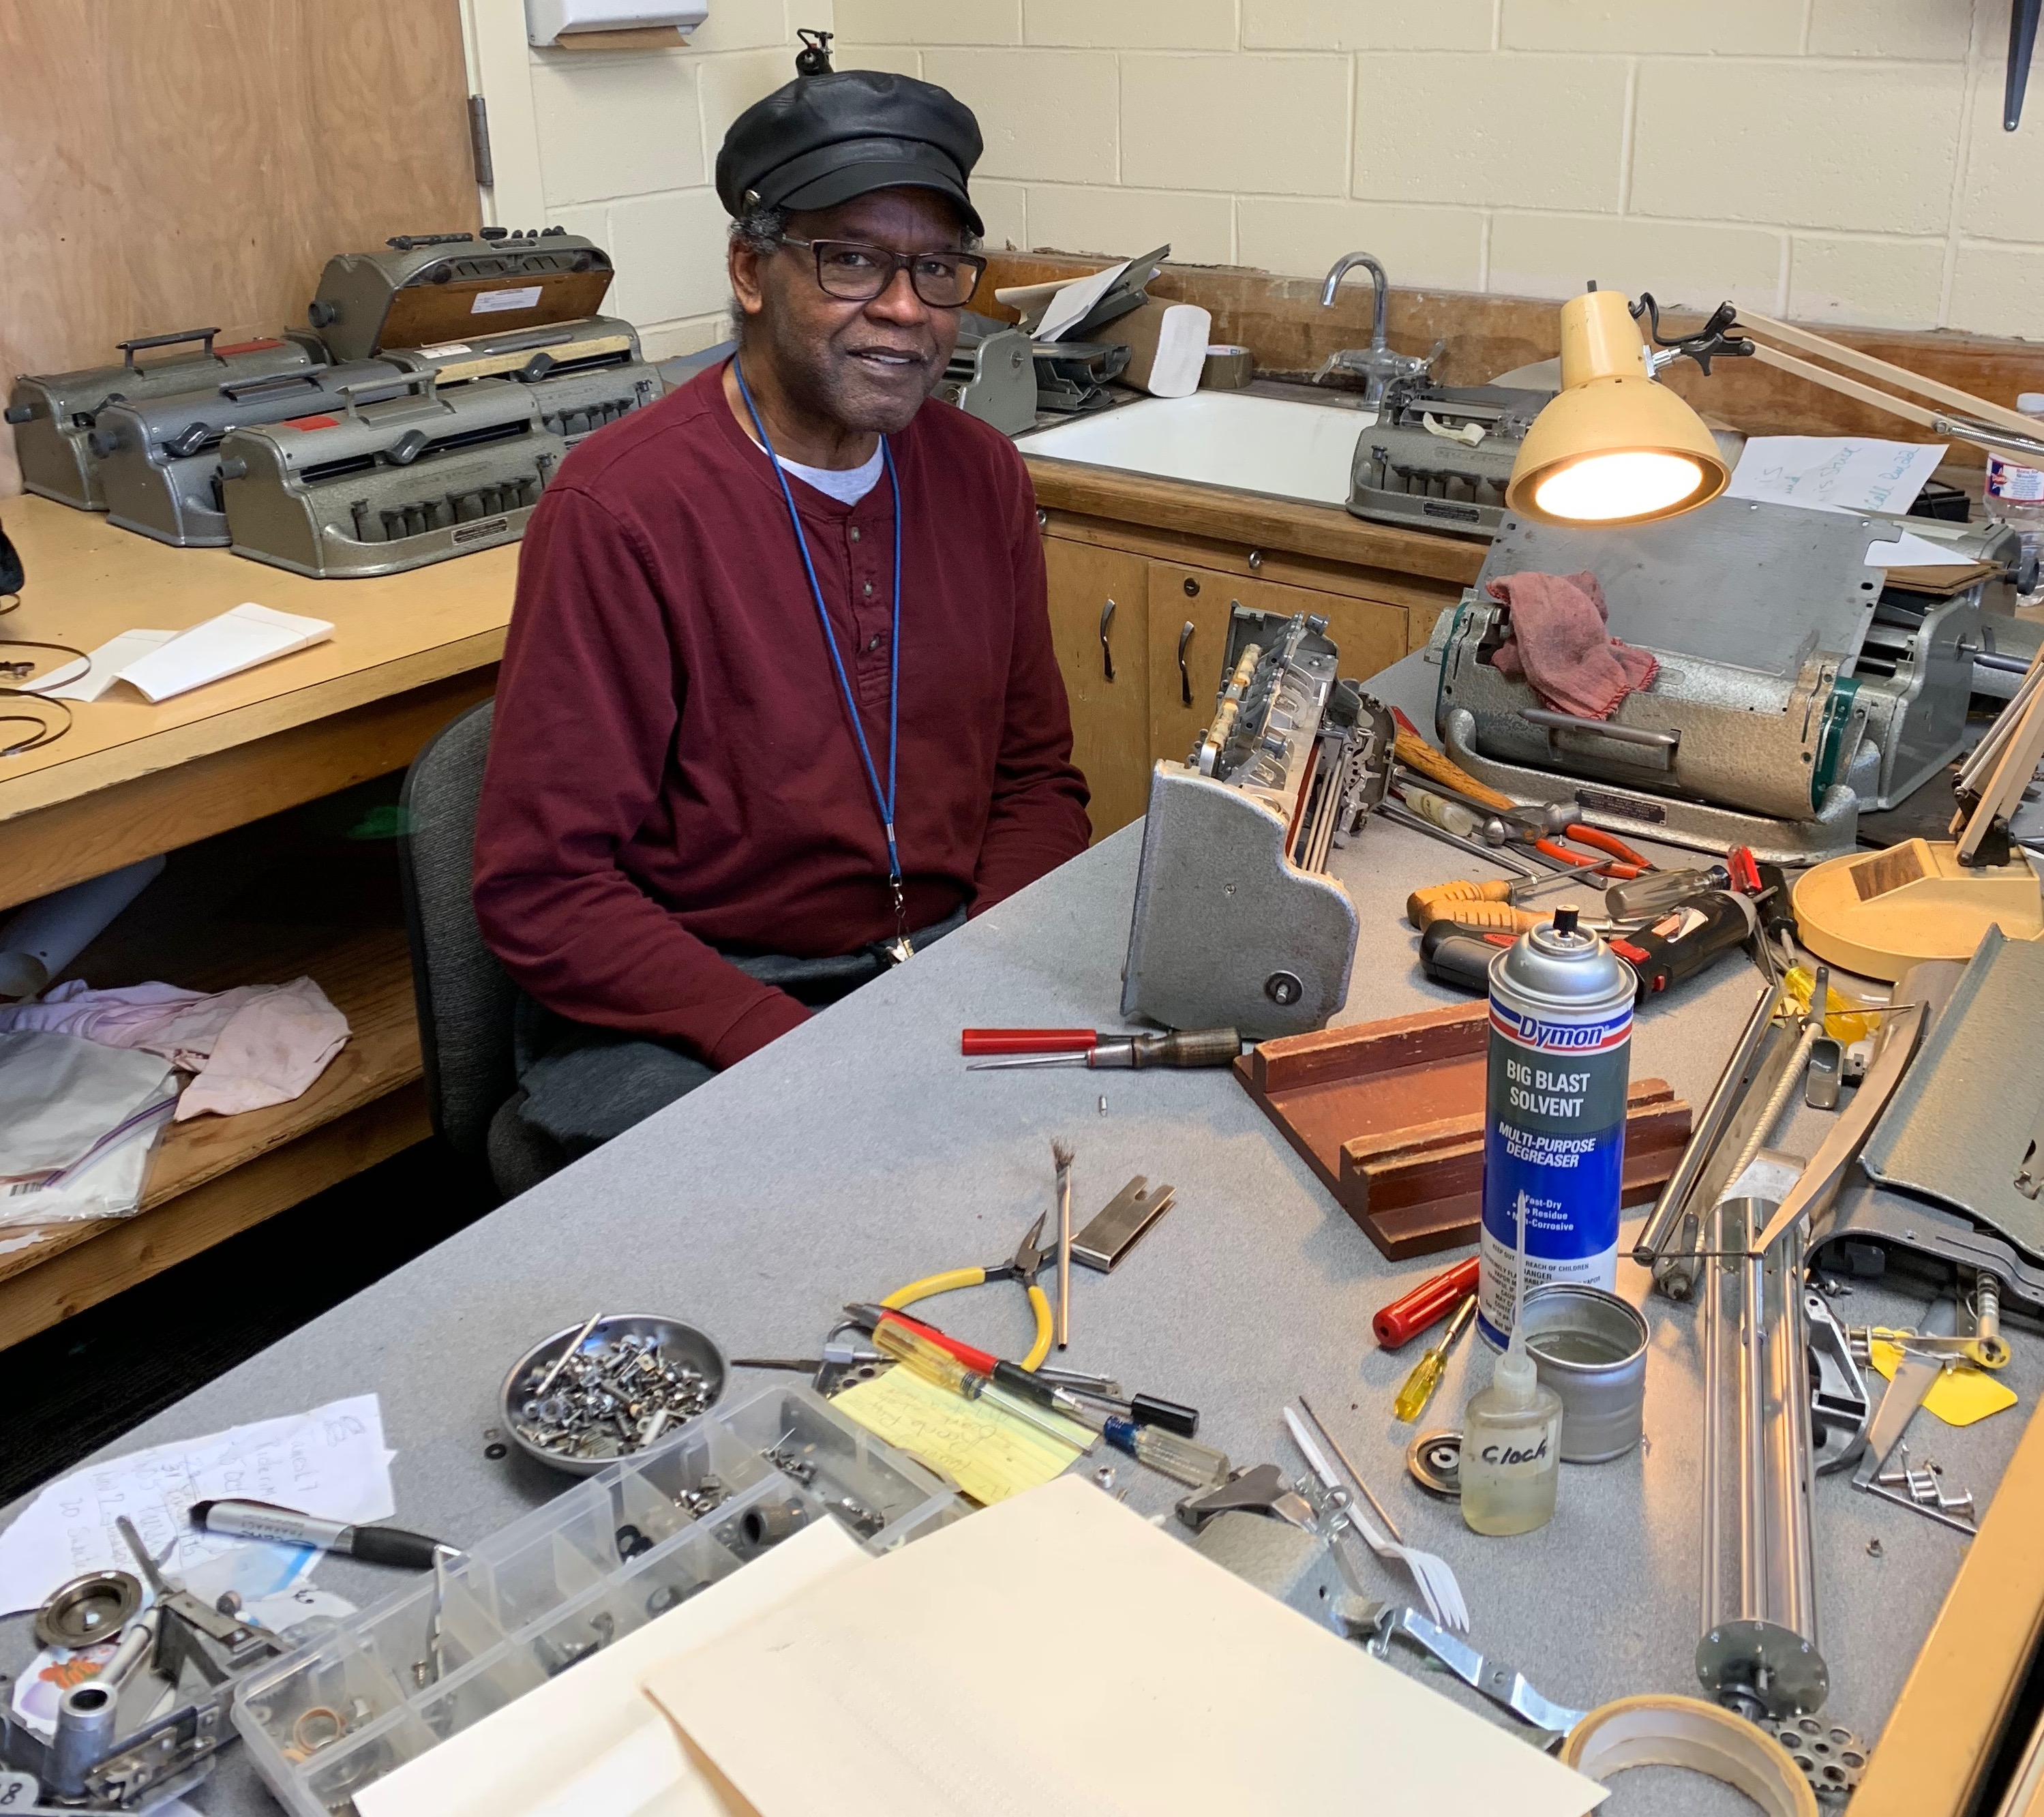 A Telephone Pioneer wearing a maroon shirt and a black leather baseball style cap sitting in front of a work table filled tools to repair braille writers.